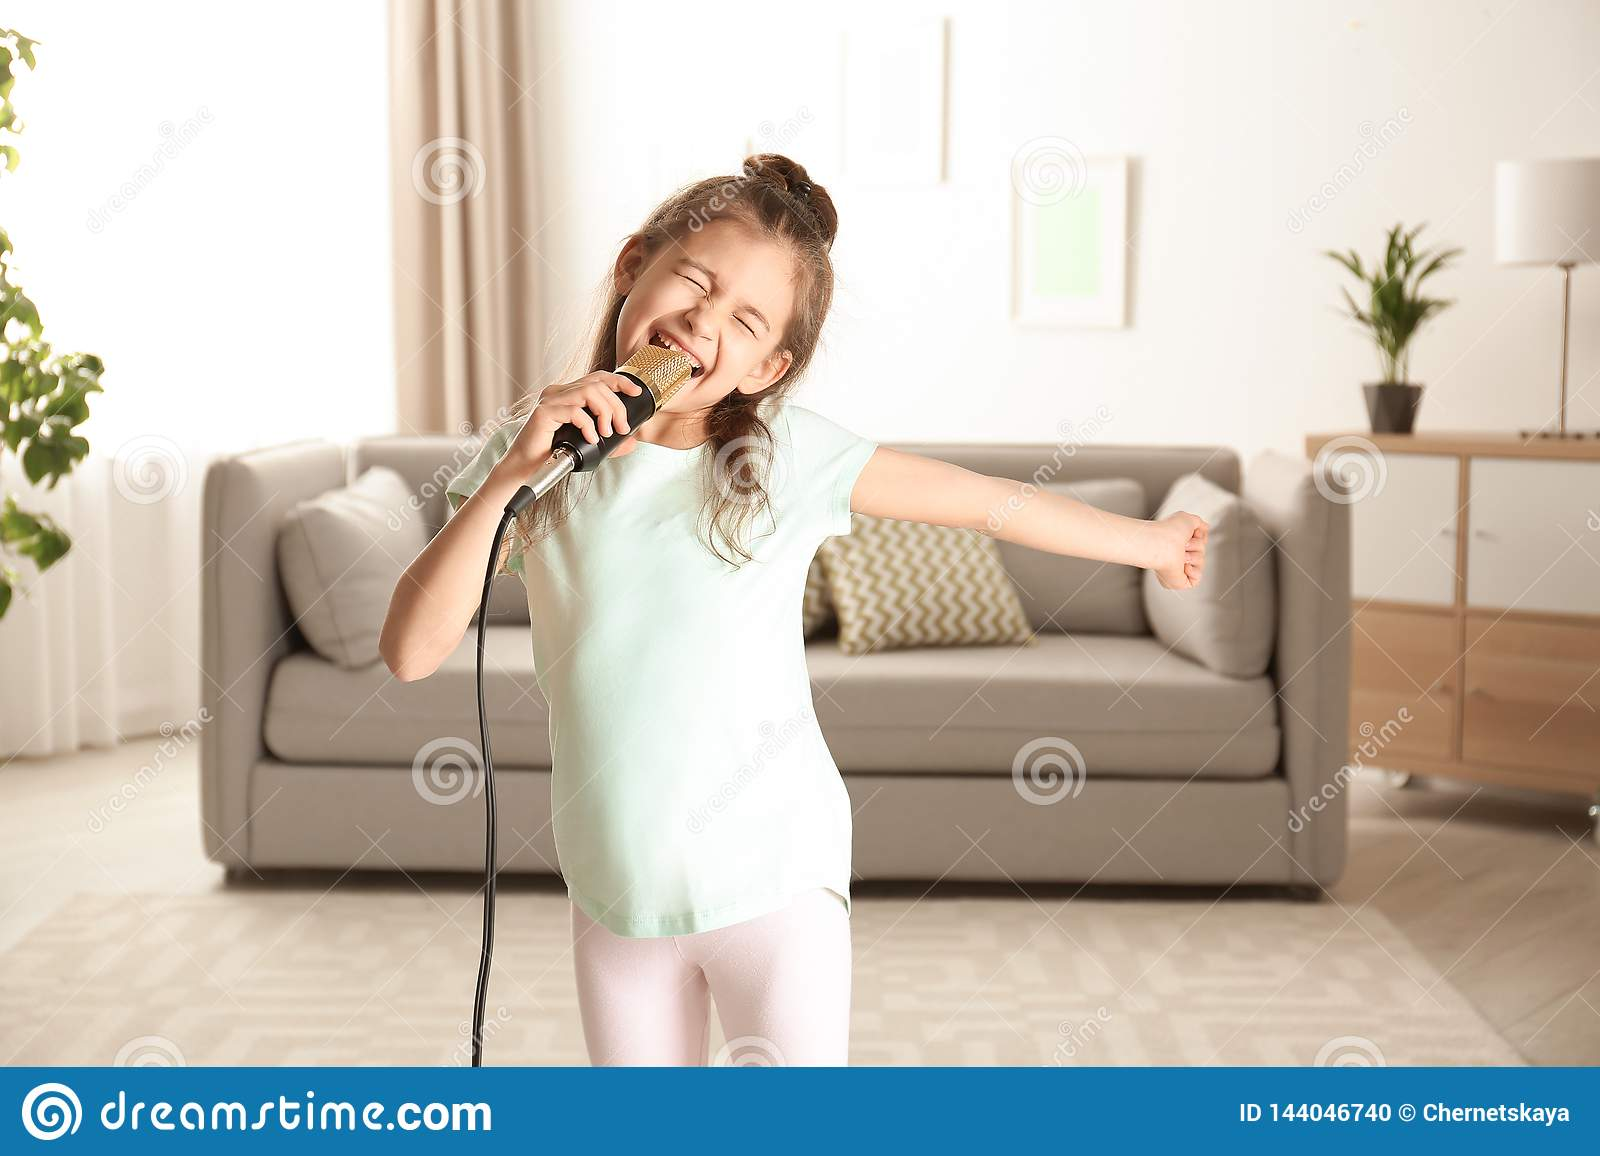 Cute funny girl with microphone in room